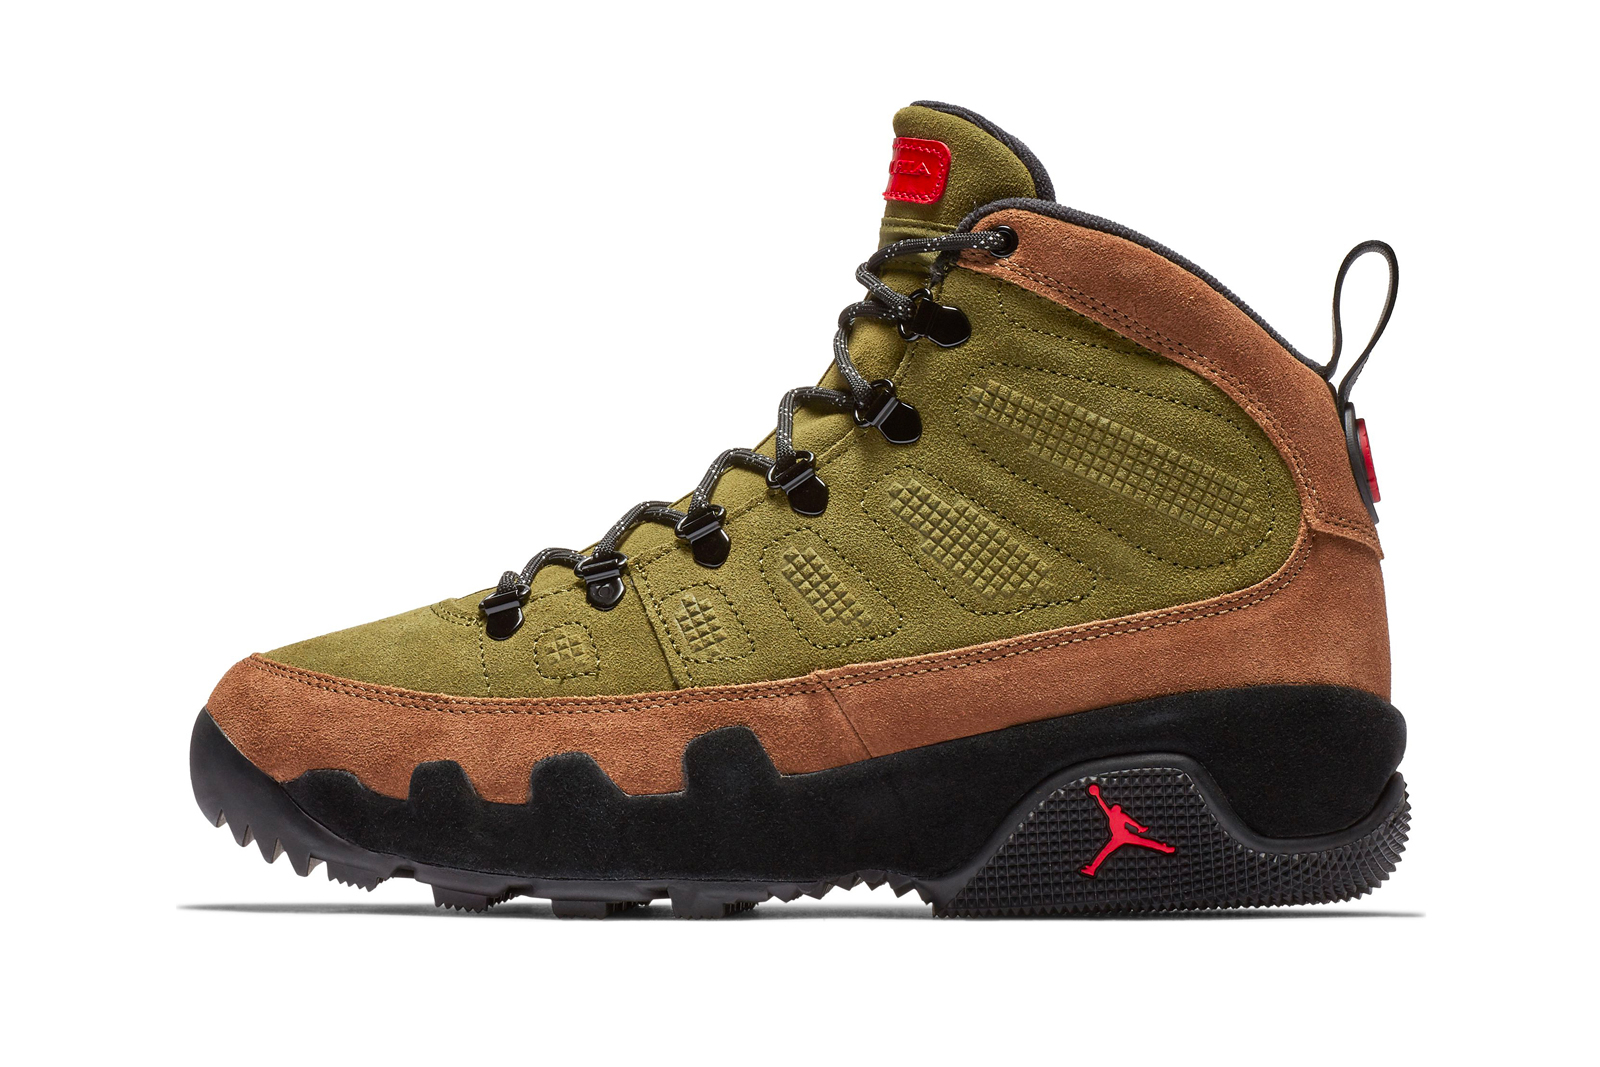 Air Jordan 9 Retro Boot NRG